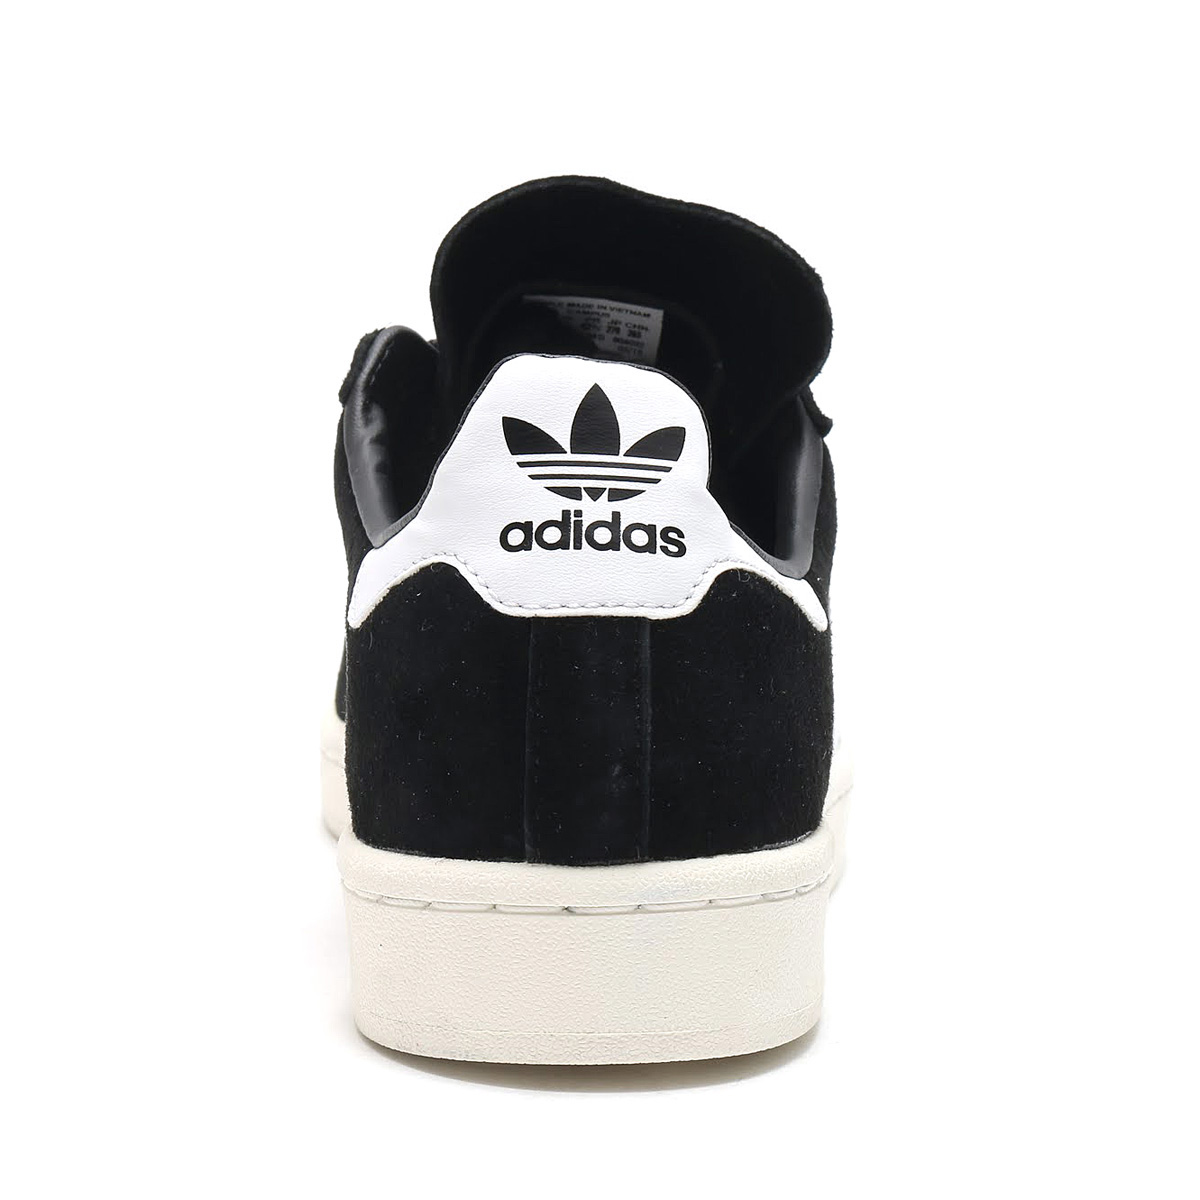 18c10b570de6 adidas Originals CAMPUS (Adidas original scan pass) (Core Black Running  White Chalk White)